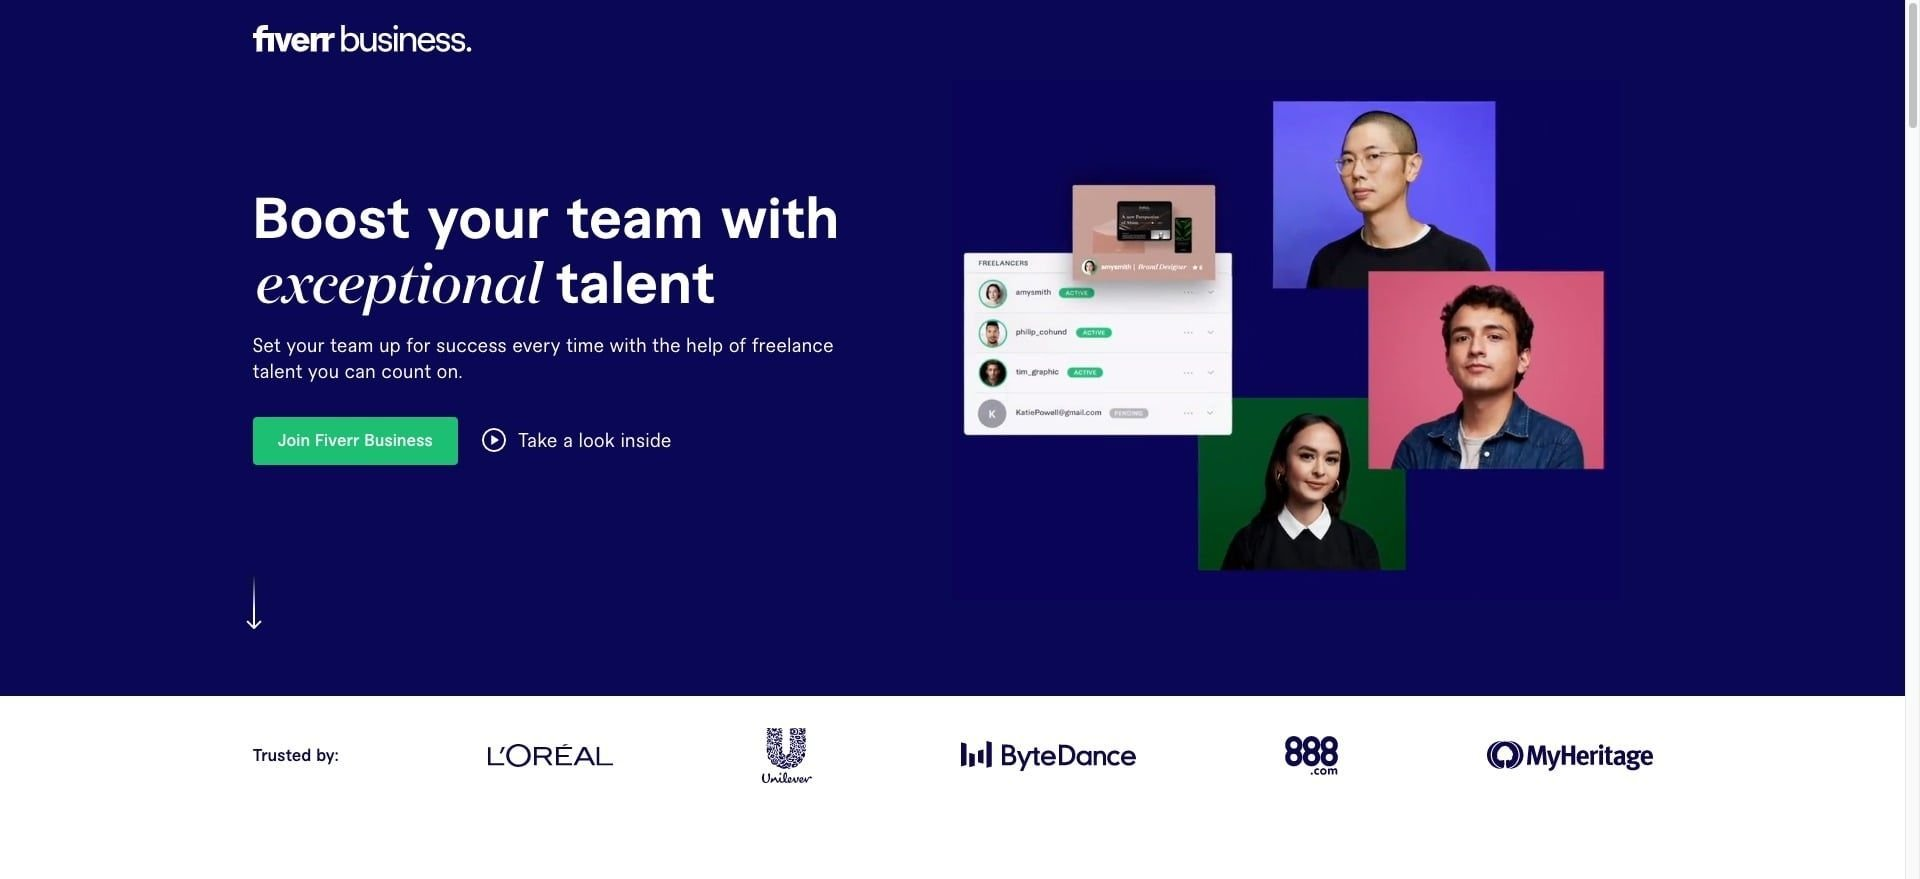 Fiverr Business - Connect Your Team With Freelance Expert